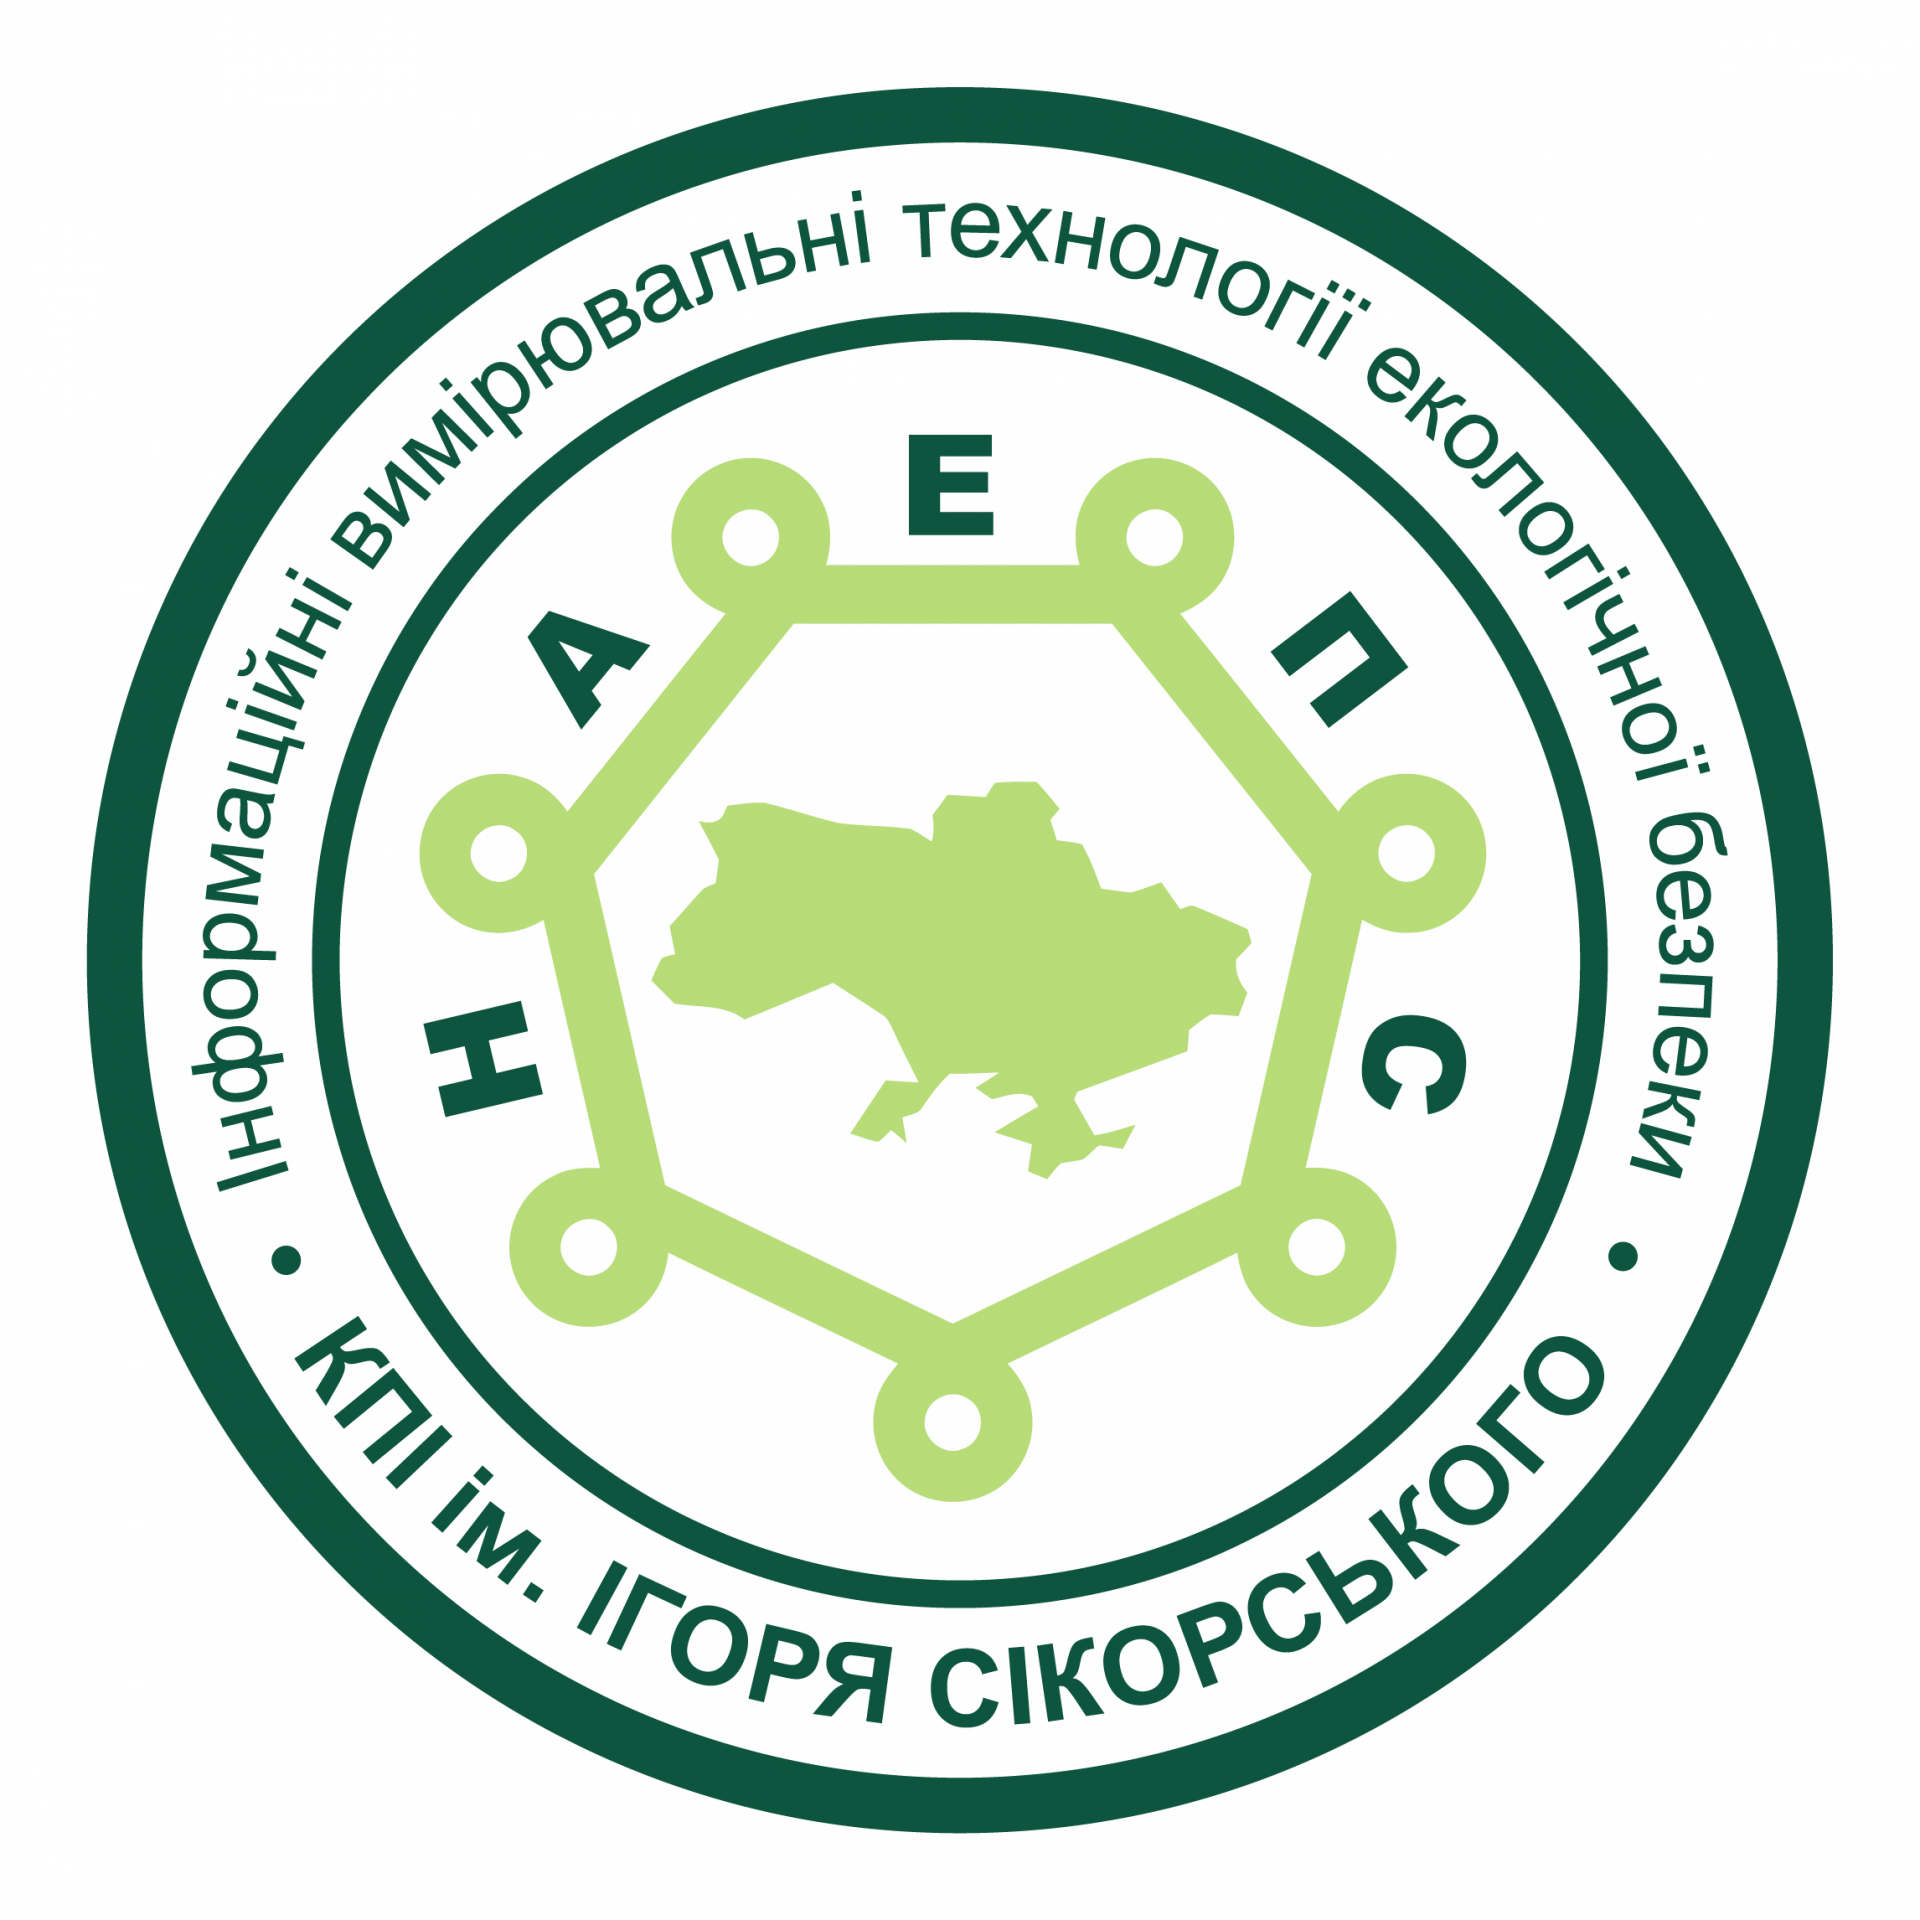 Department of scientific, analytical and environmental devices and systems